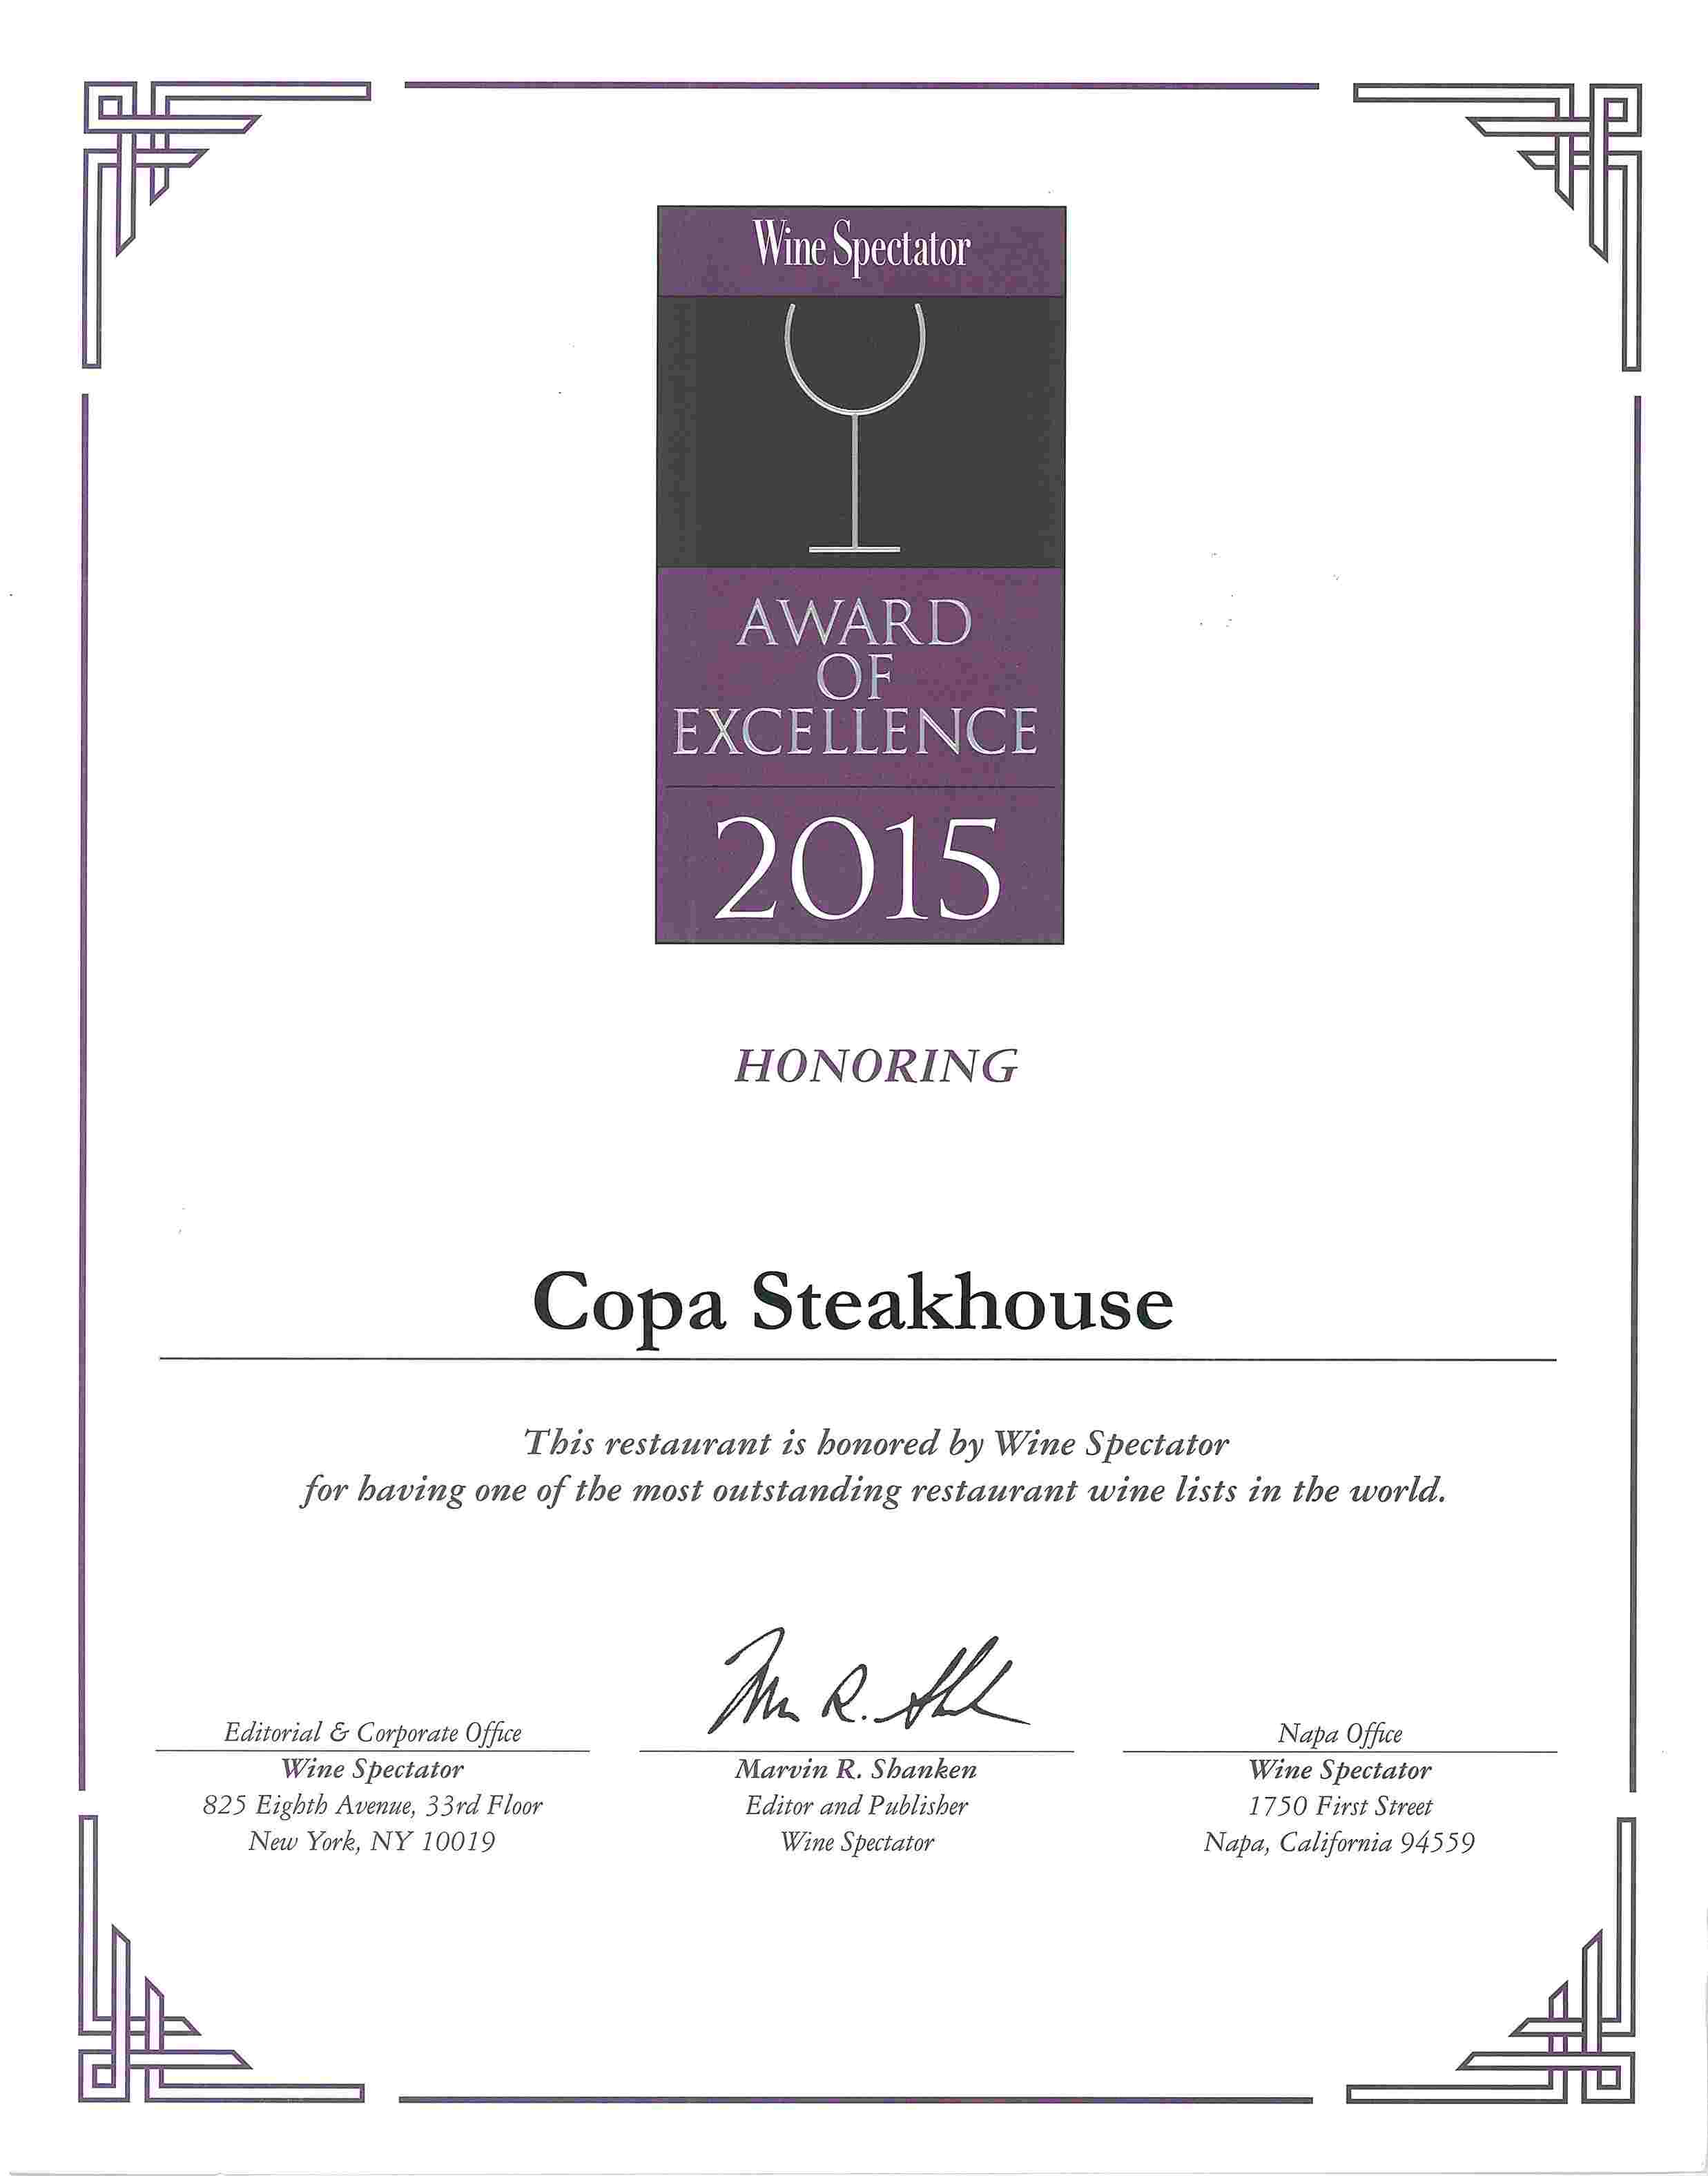 Copa Steakhouse - Wine Spectator List Awards 2015